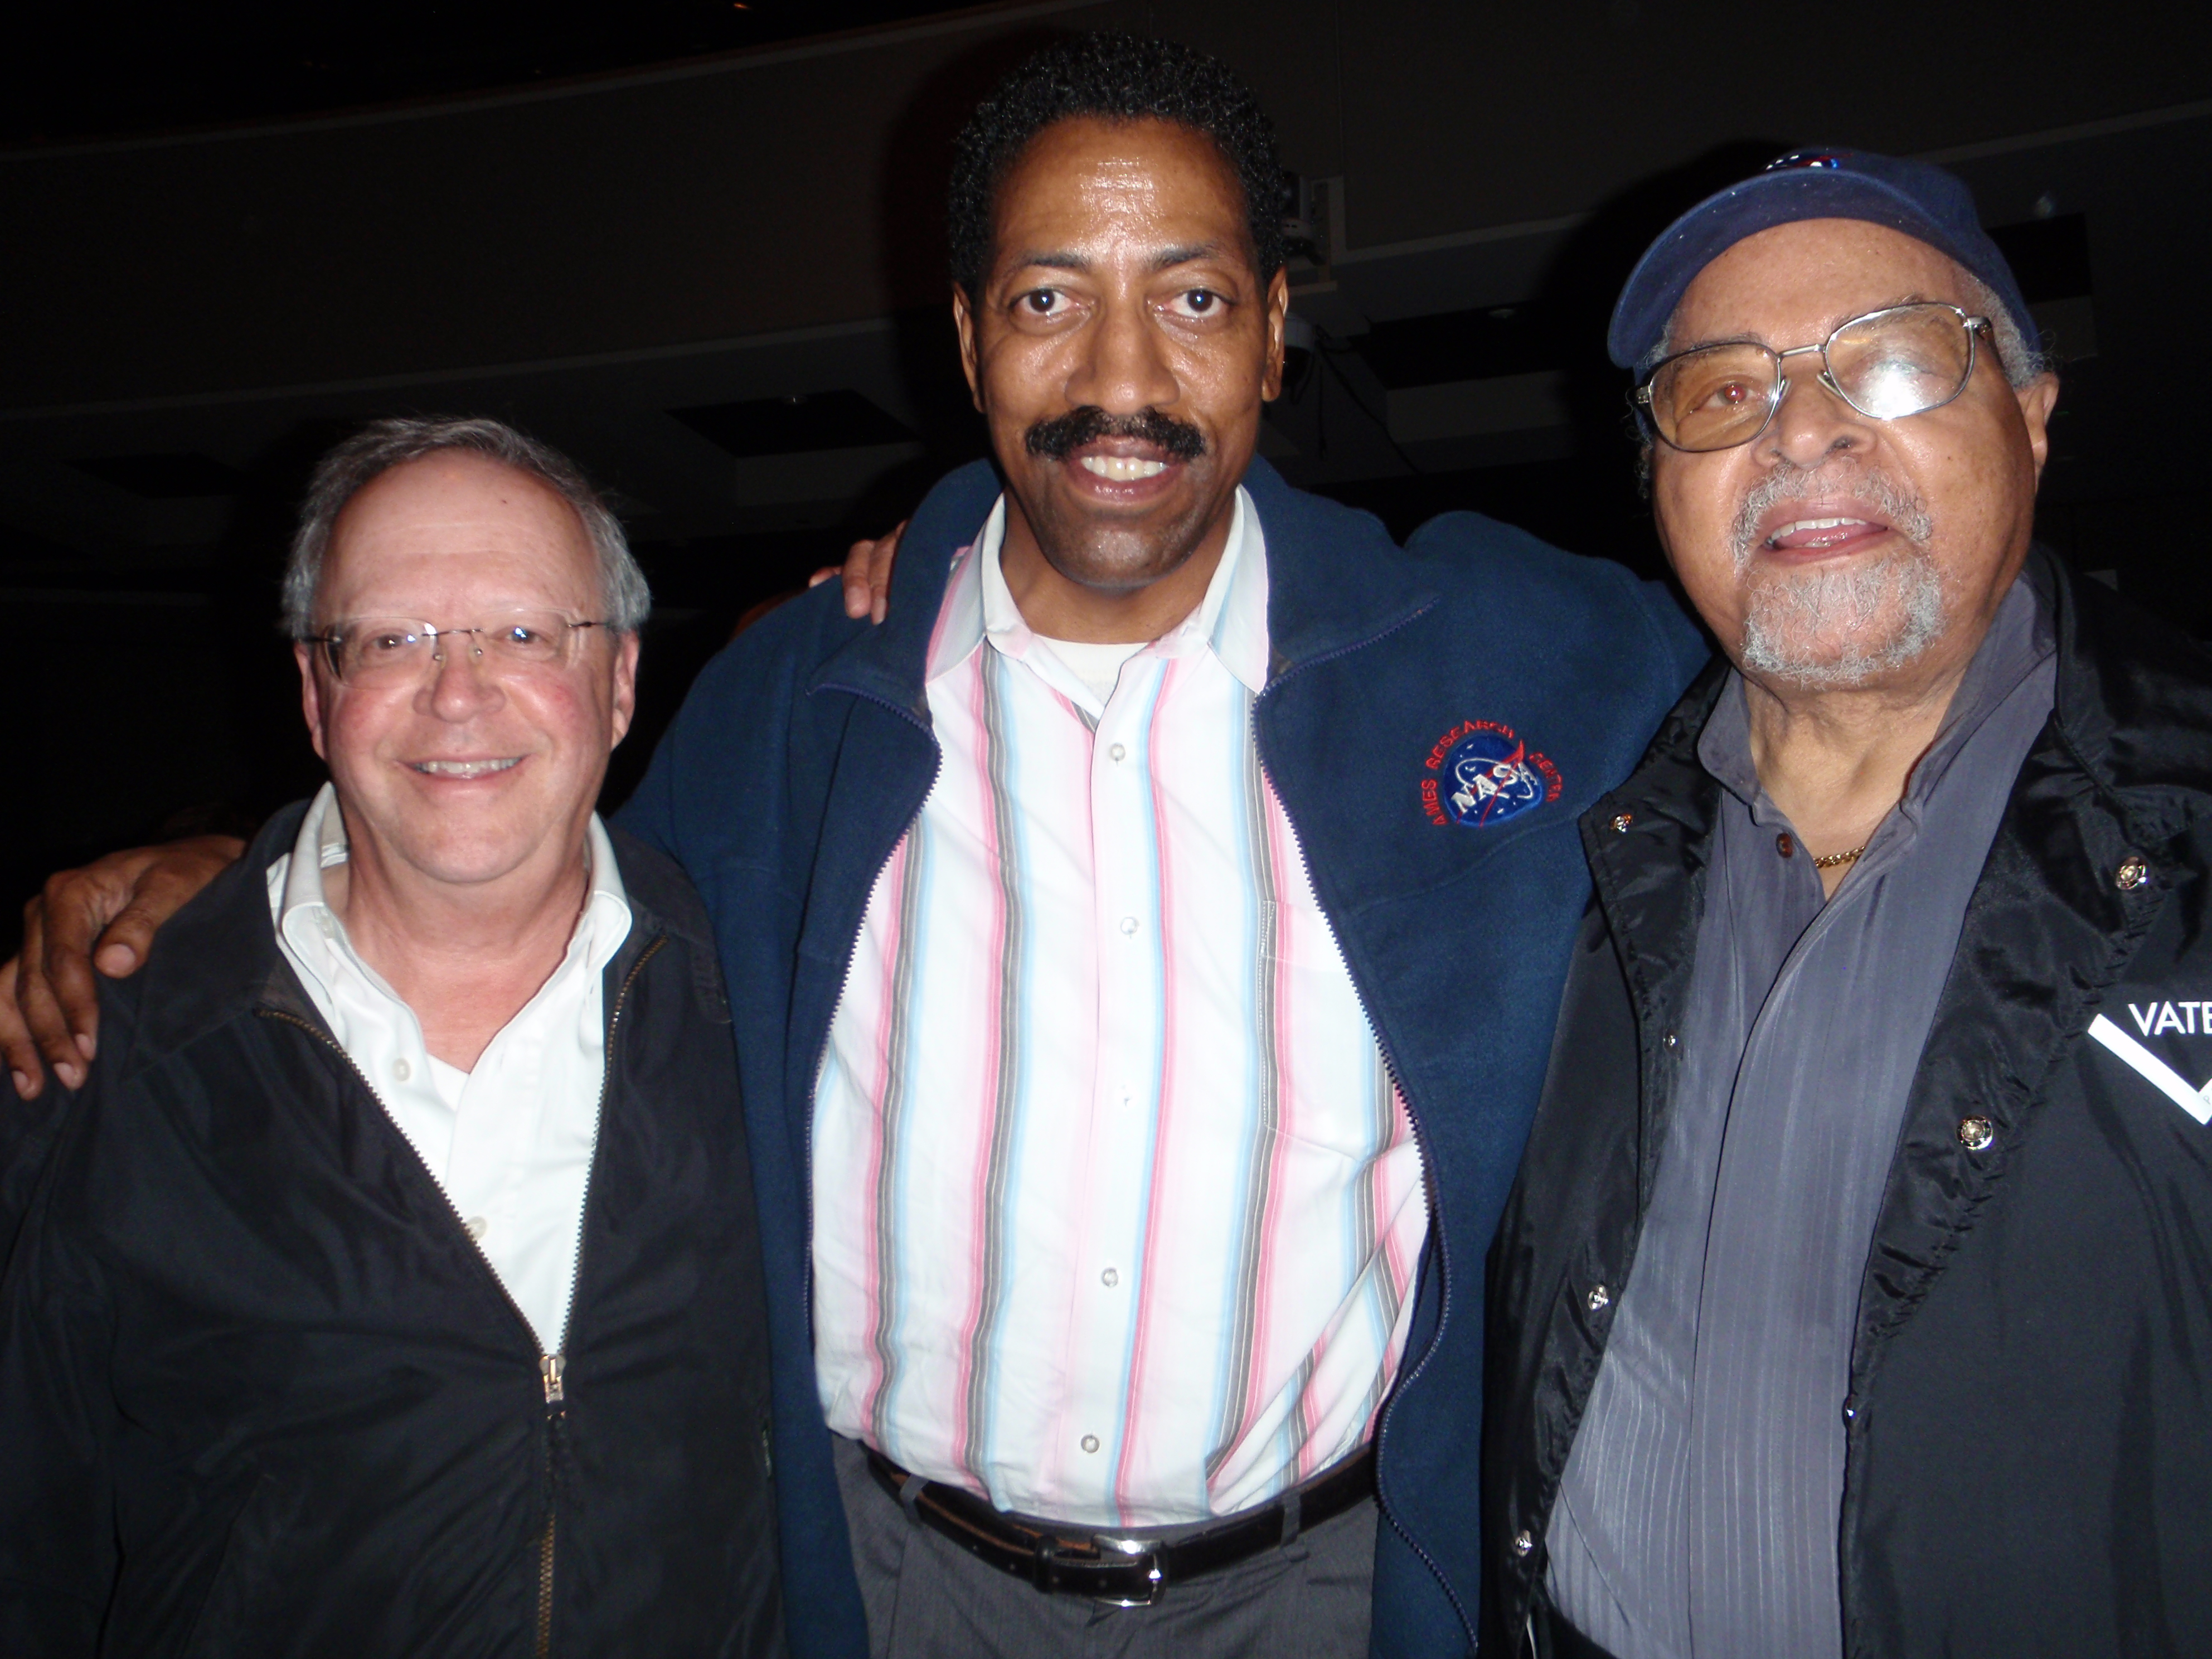 Kenneth Cobb with Bay Area Jazz buddy Dan McClosky and Jimmy Cobb (no relation)